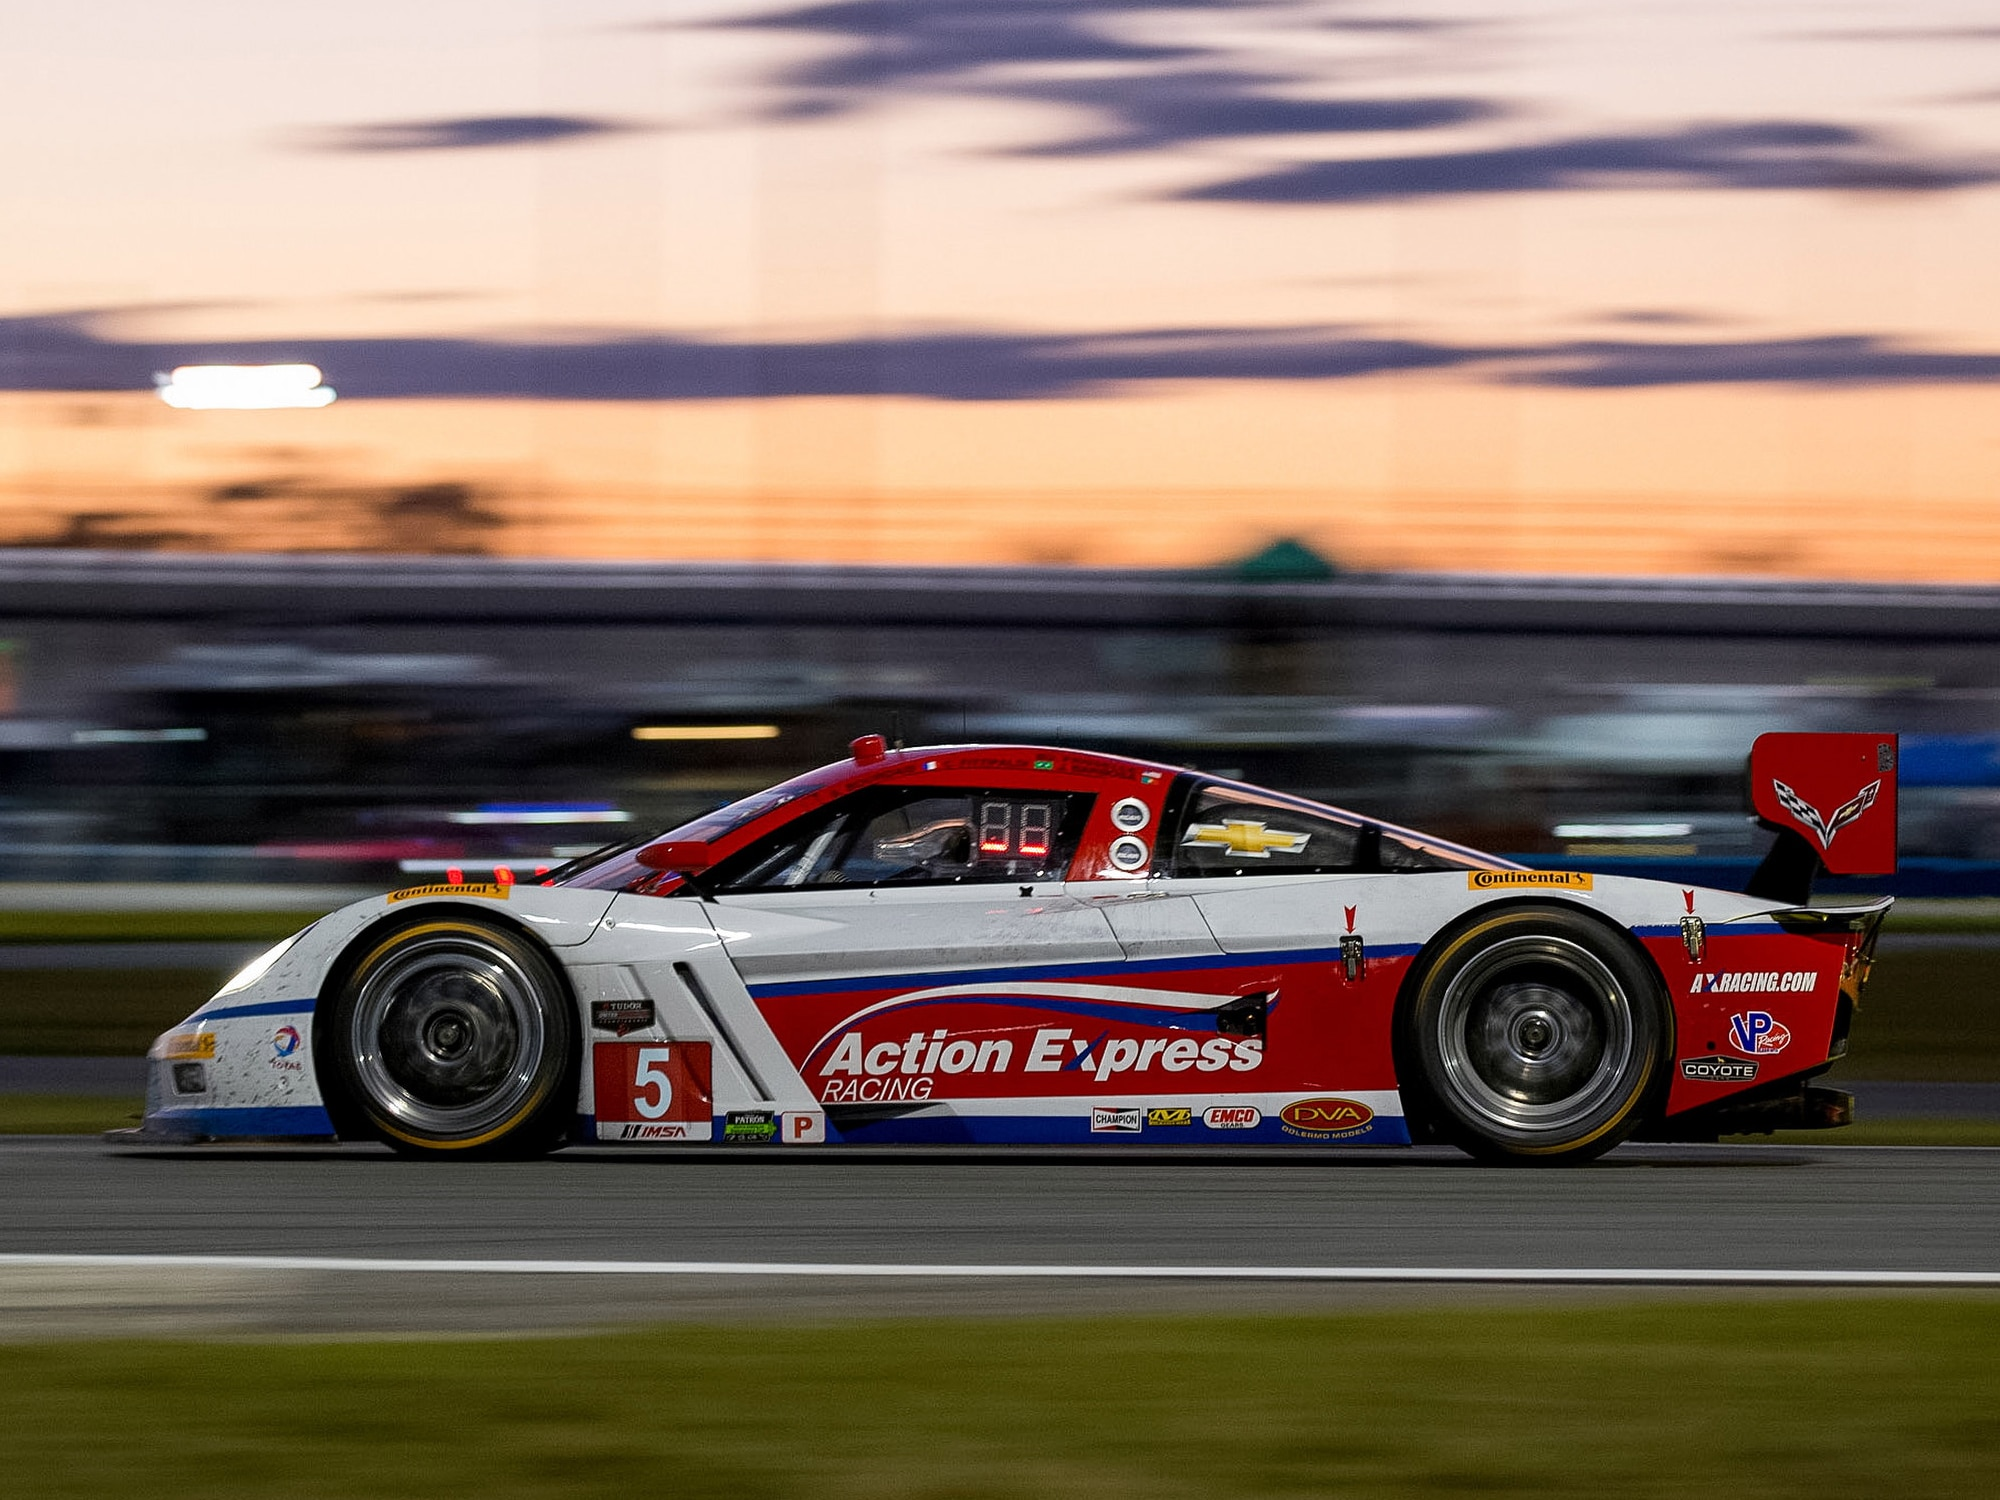 Chevy Corvette Captures First Four Places in Rolex 24 Endurance Classic